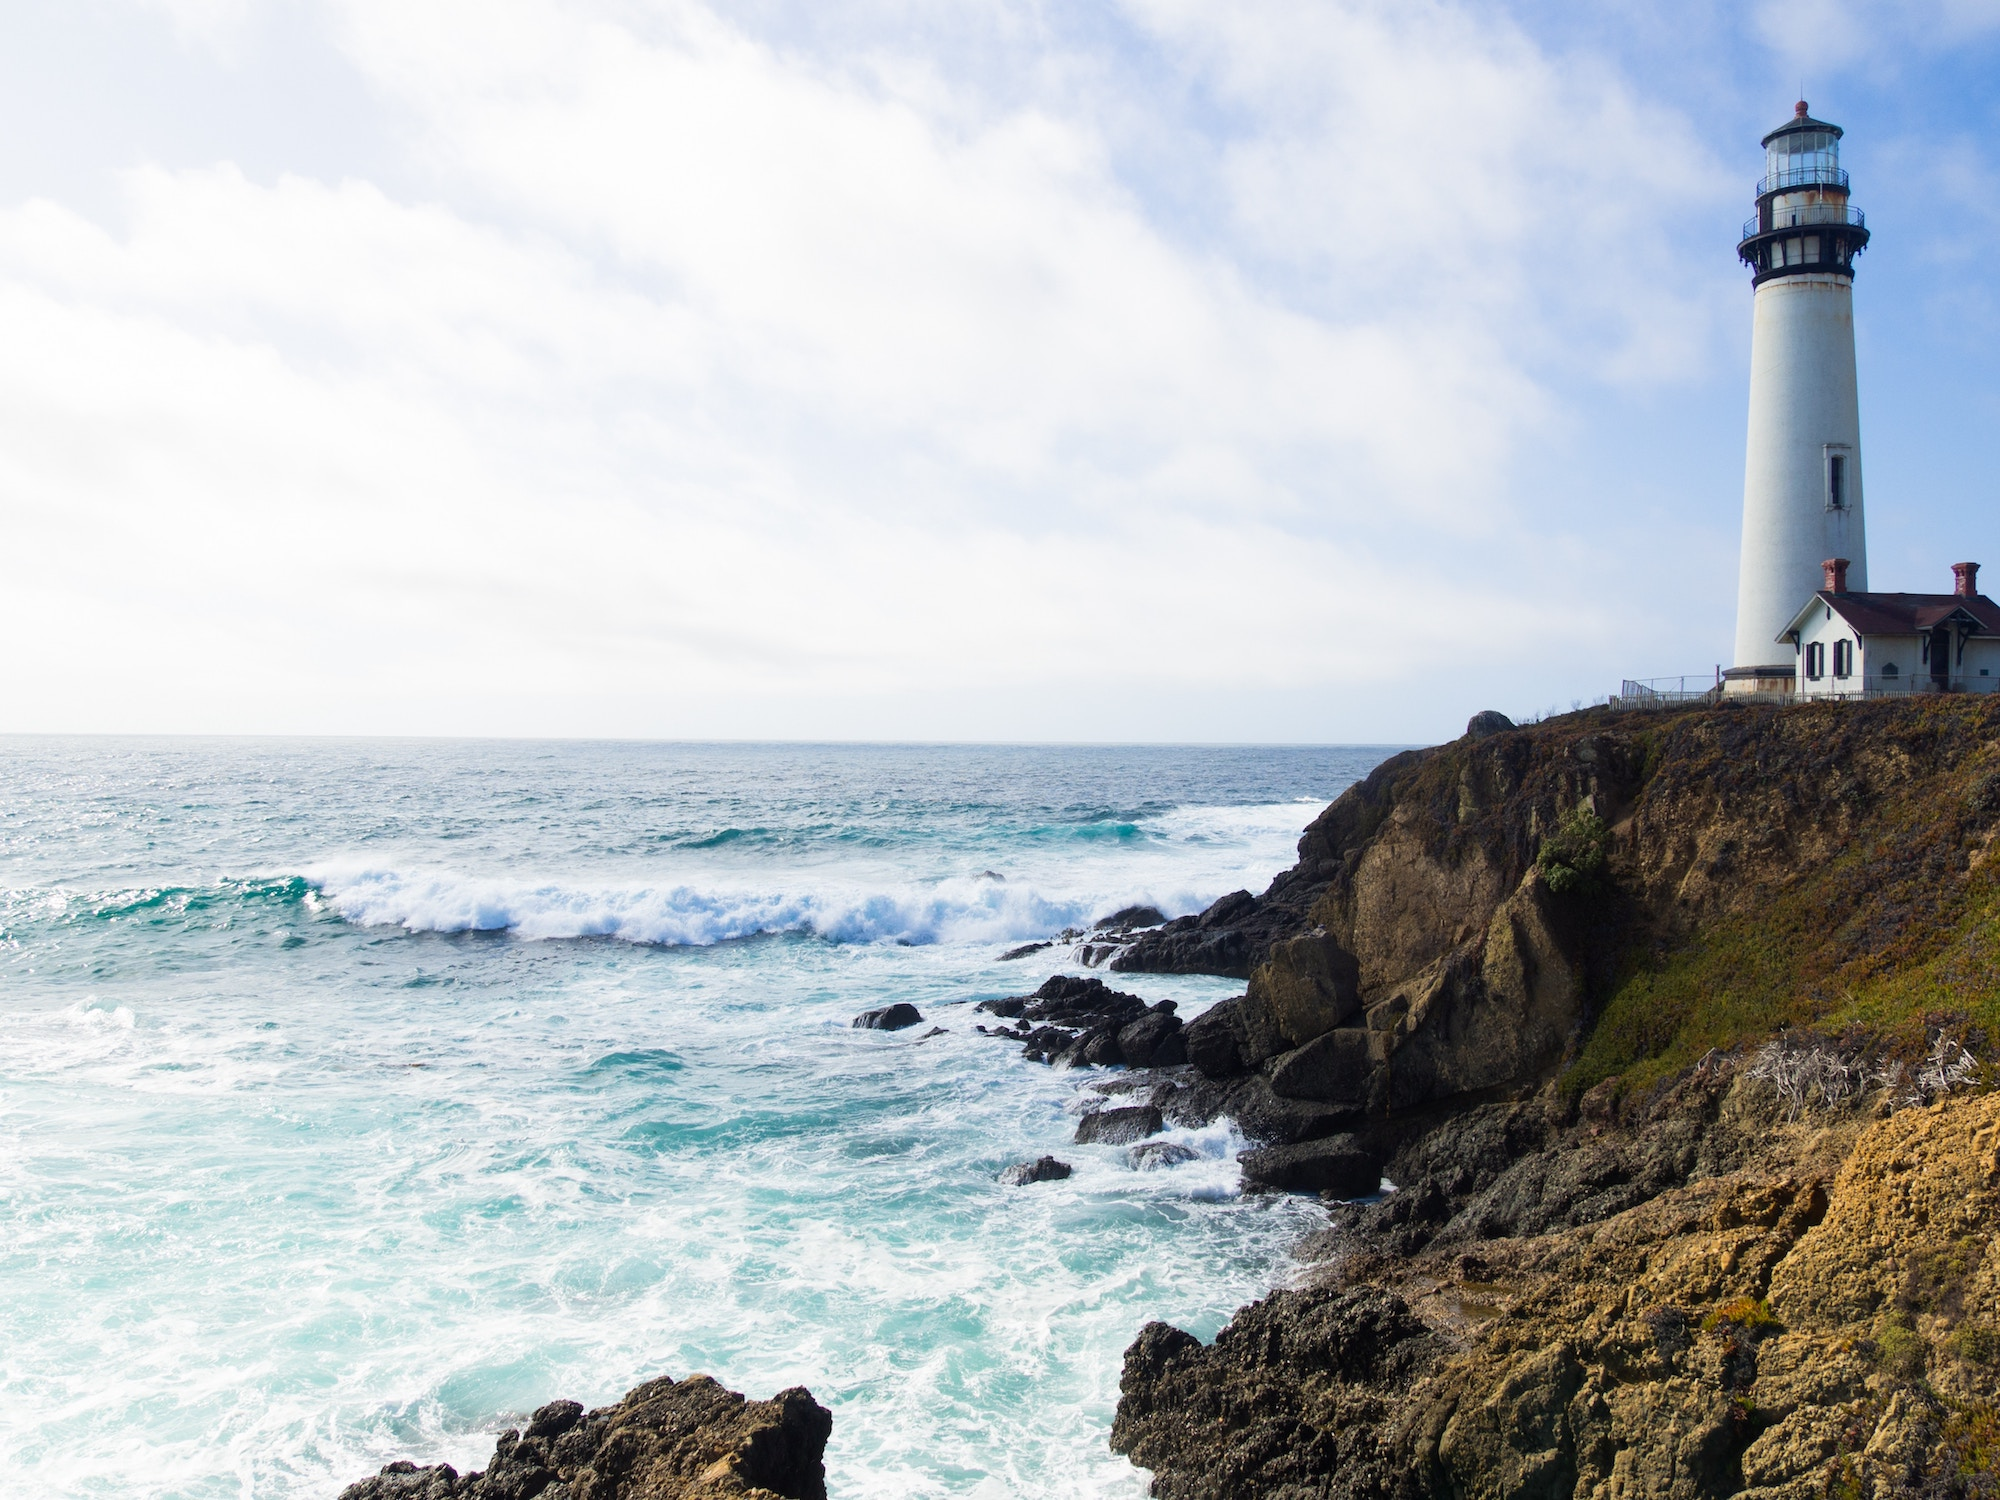 Meditation is like a lighthouse on the choppy sea